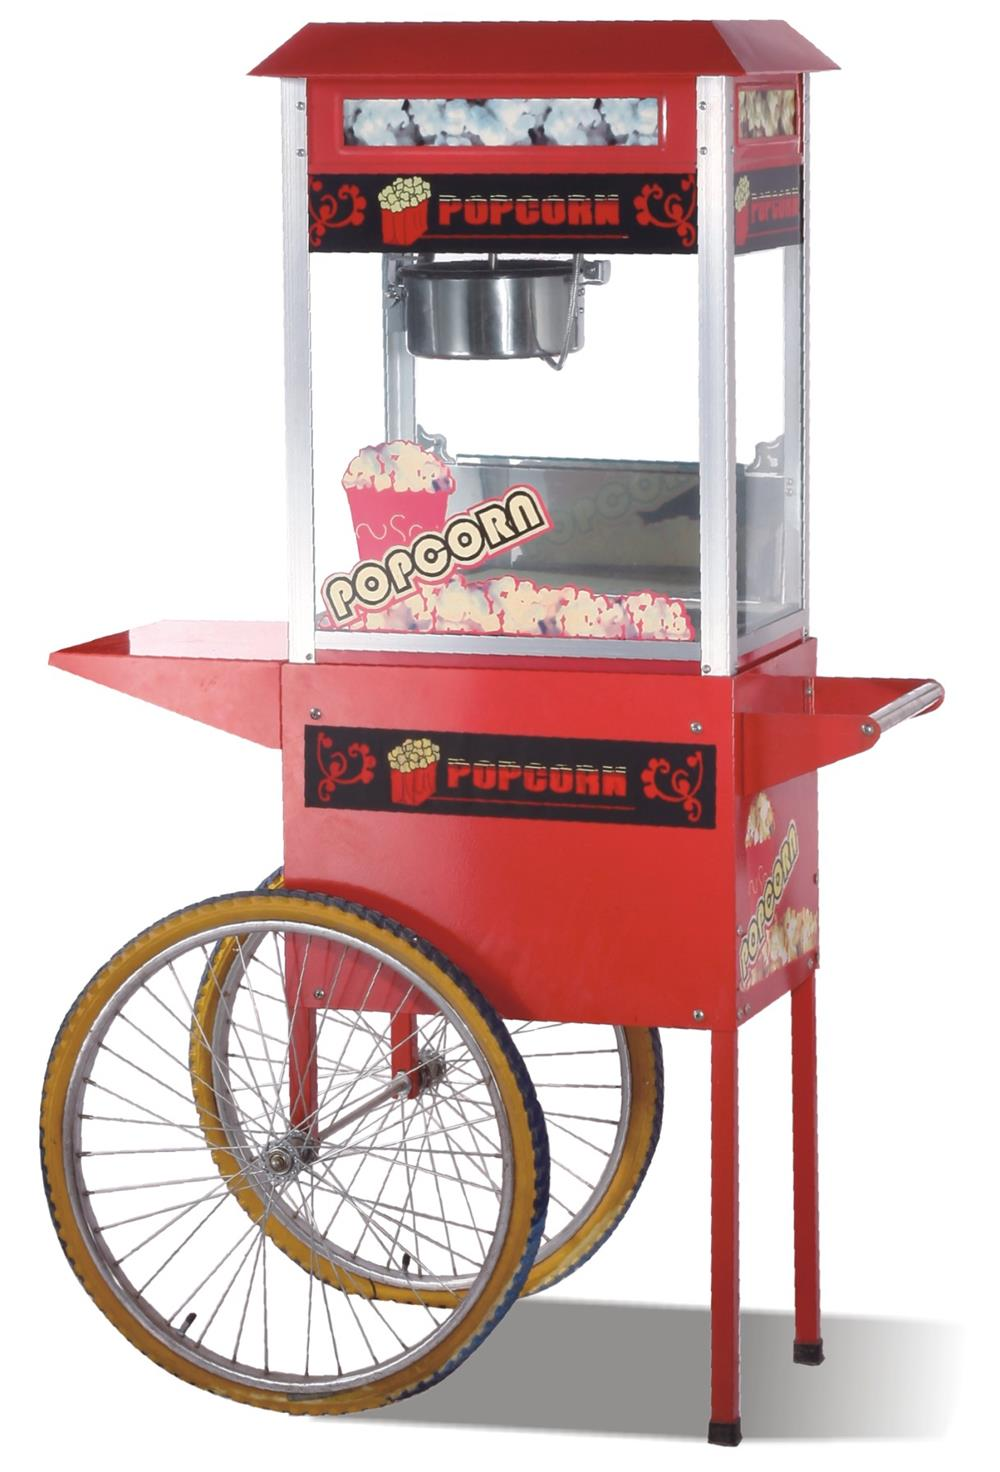 Hot air commercial electric popcorn machine with cart High Quality Popcorn Machine 10oz stainless steel 110v 220v electric commercial popcorn machine with temperature control